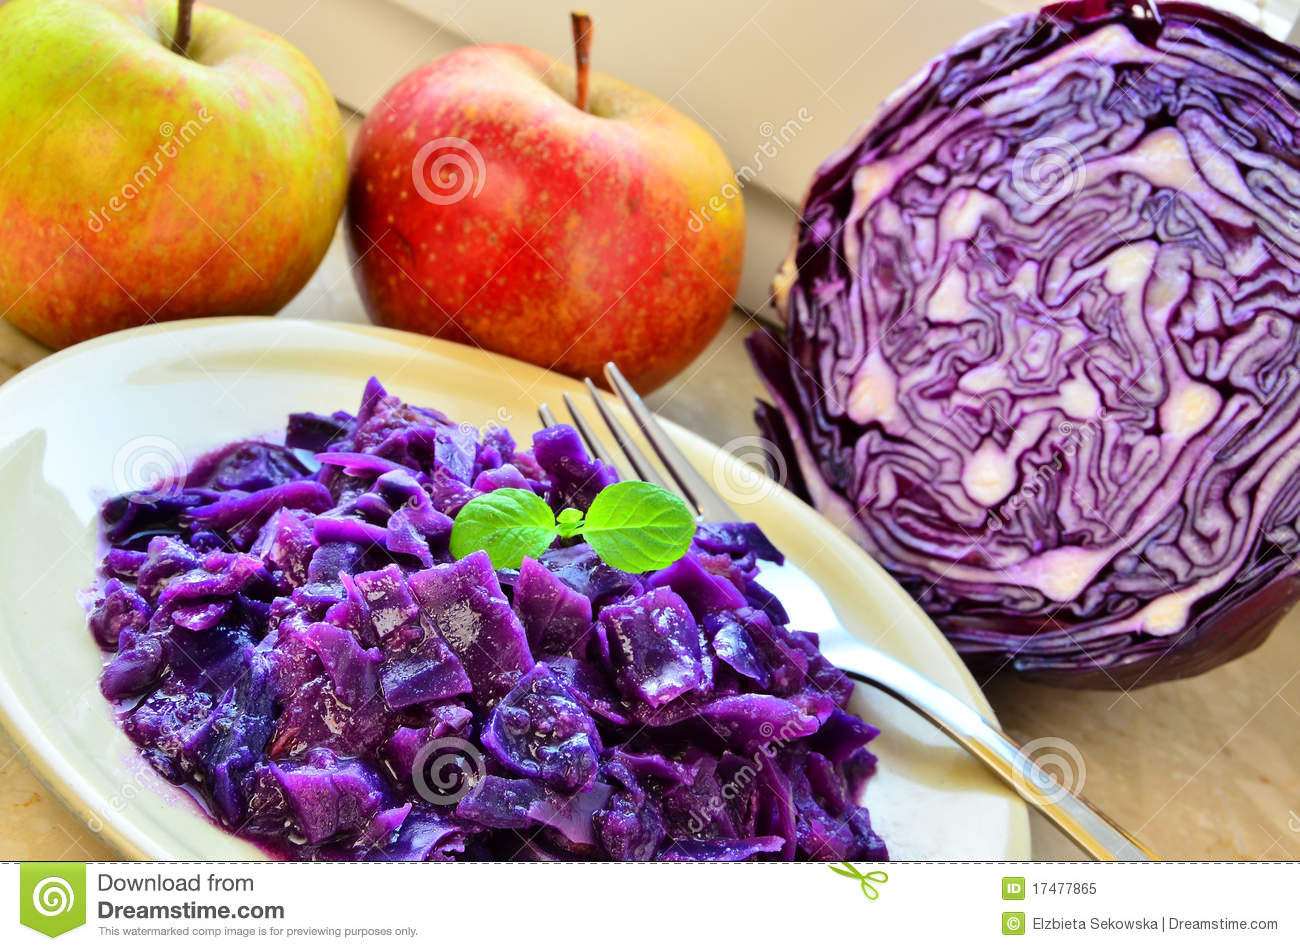 Cooked Red Cabbage Royalty Free Stock Photo - Image: 17477865